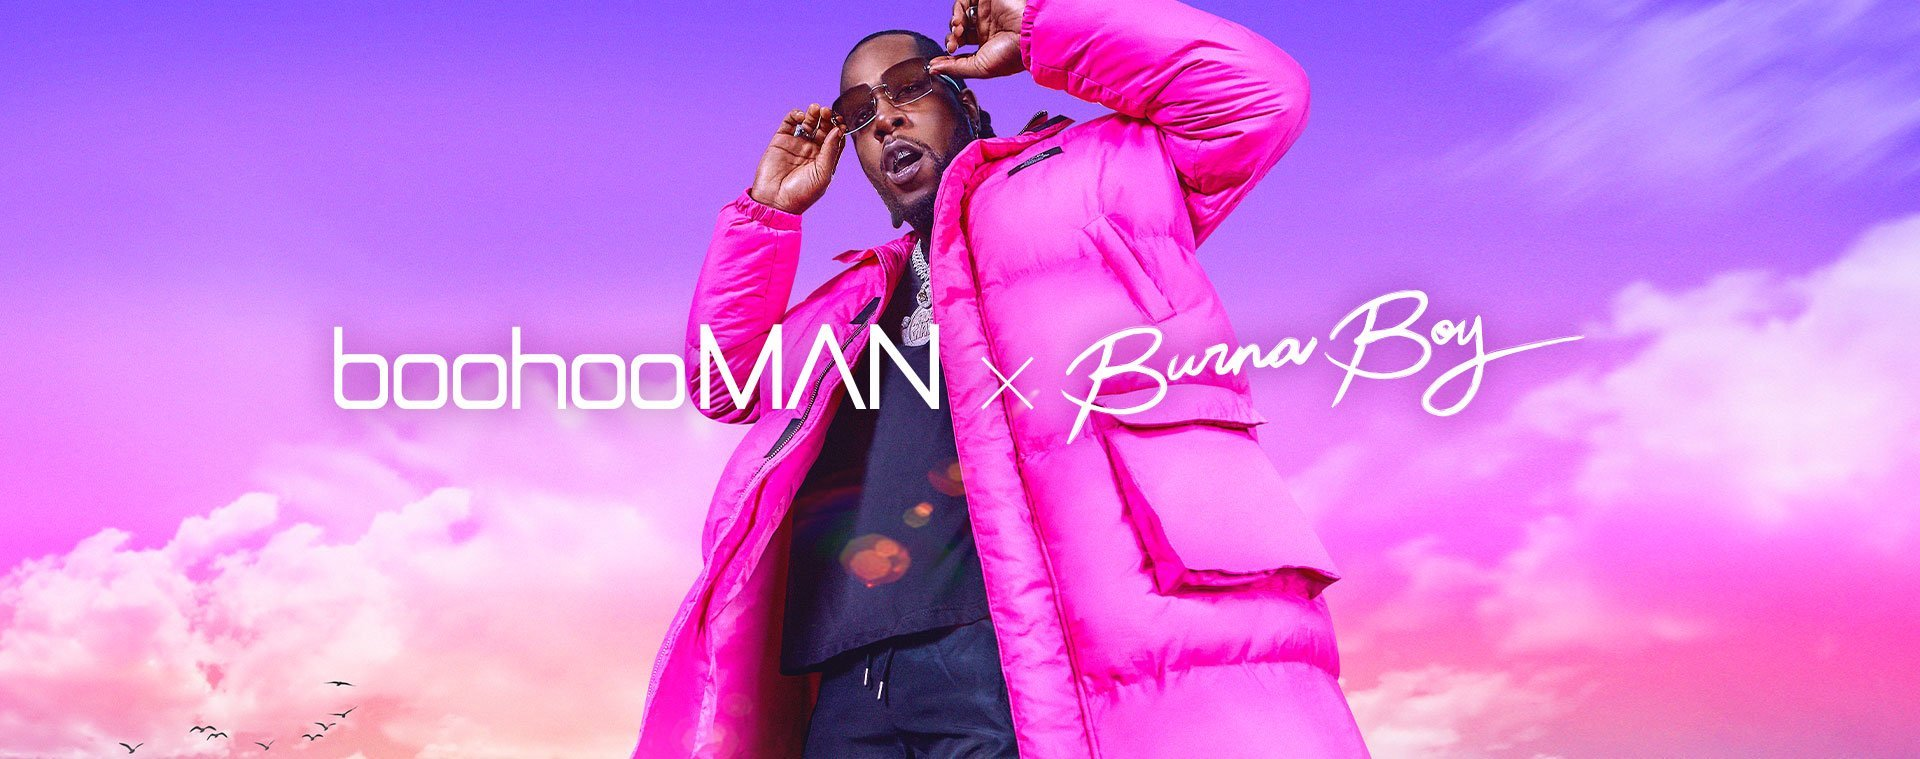 boohooMAN x Burna Boy